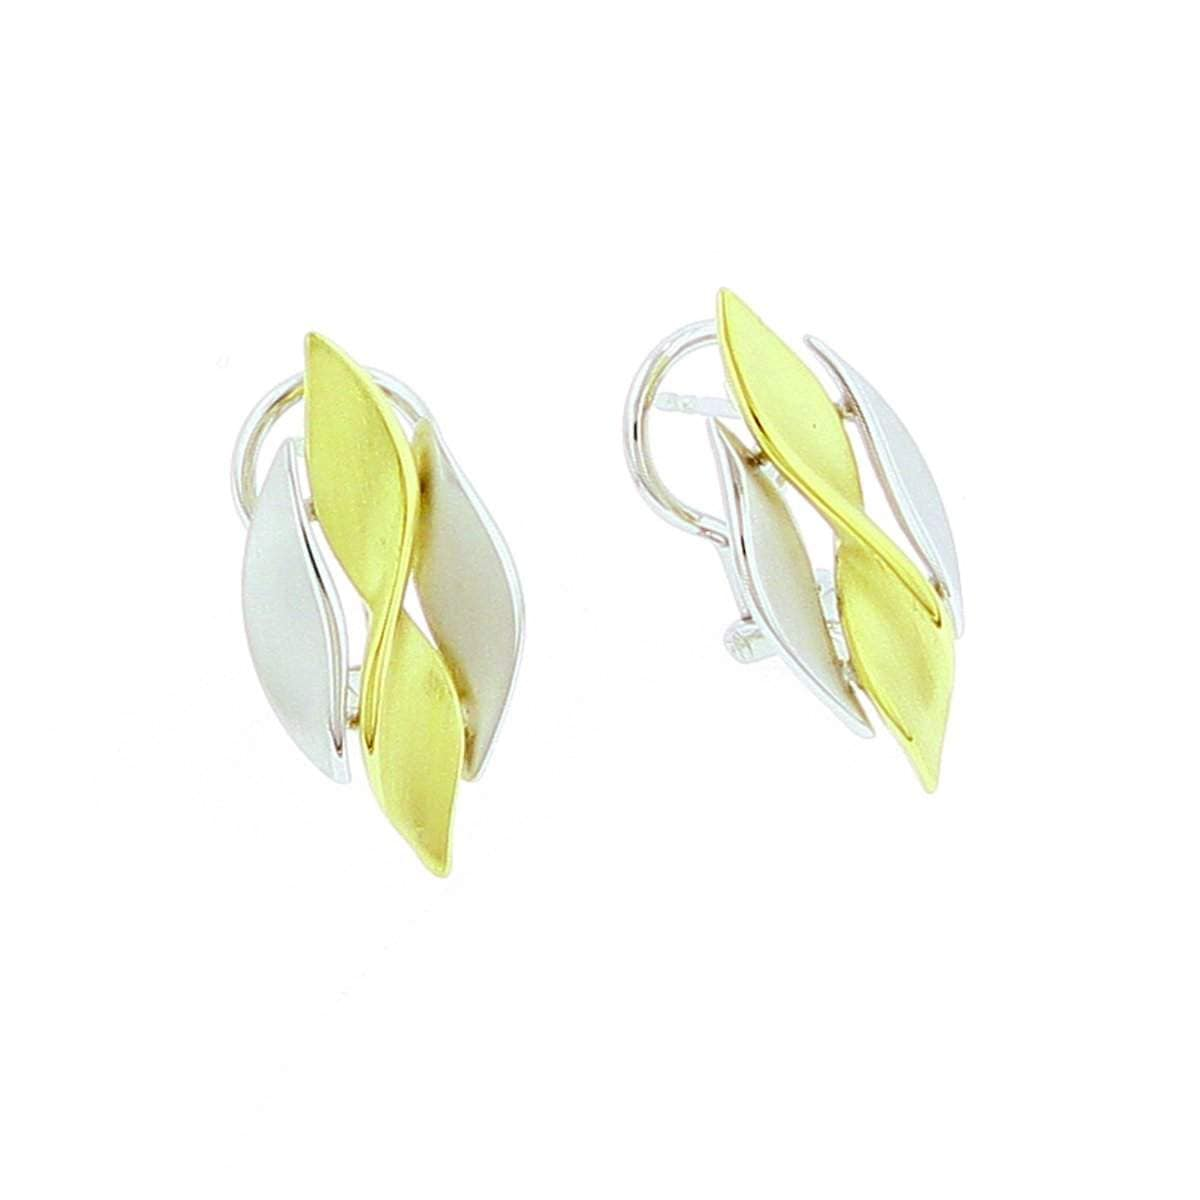 Yellow Gold & Rhodium Plated Sterling Silver Earrings - 04/85700-Y-Breuning-Renee Taylor Gallery